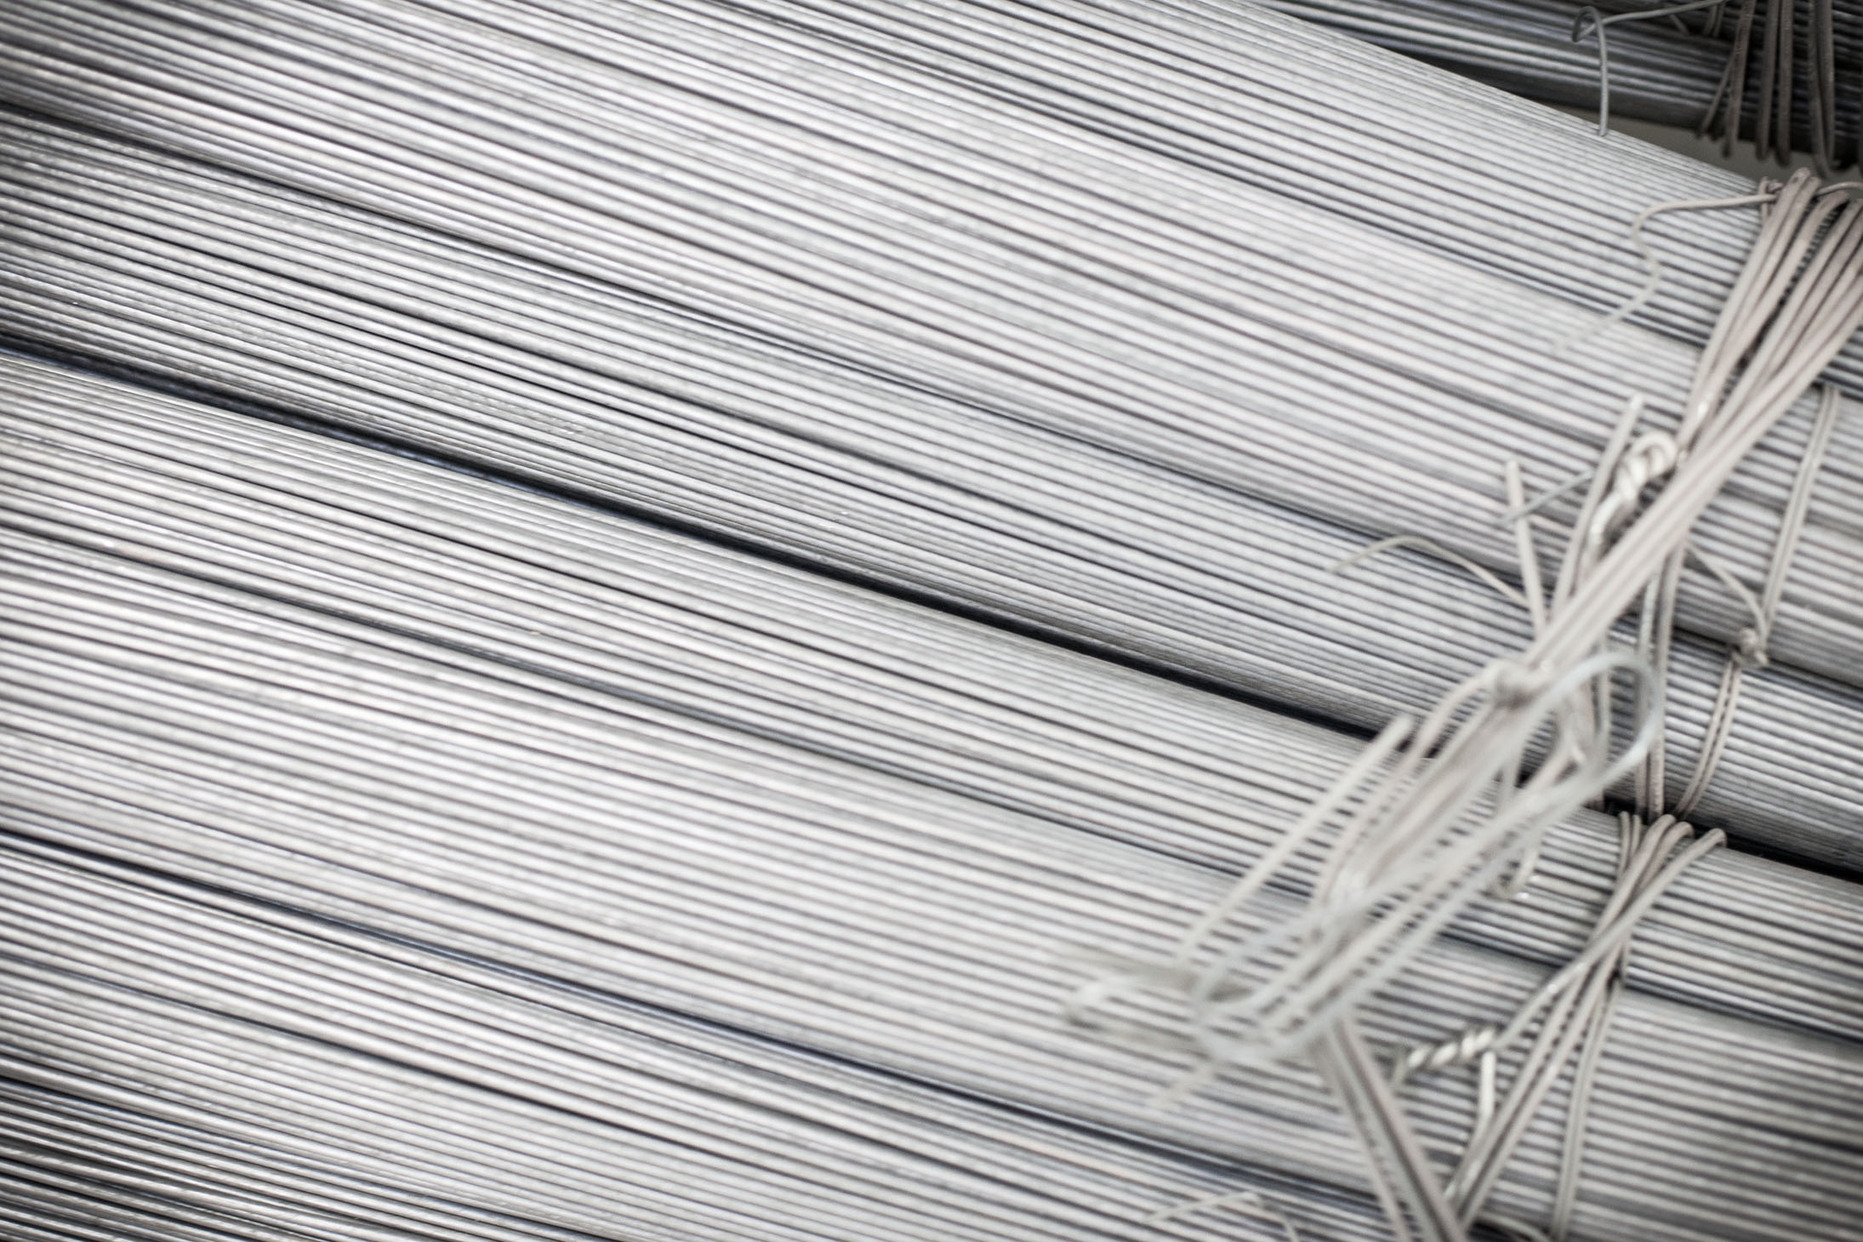 All you Need to Know about Cut and Looped Baling Wire | D R Baling ...